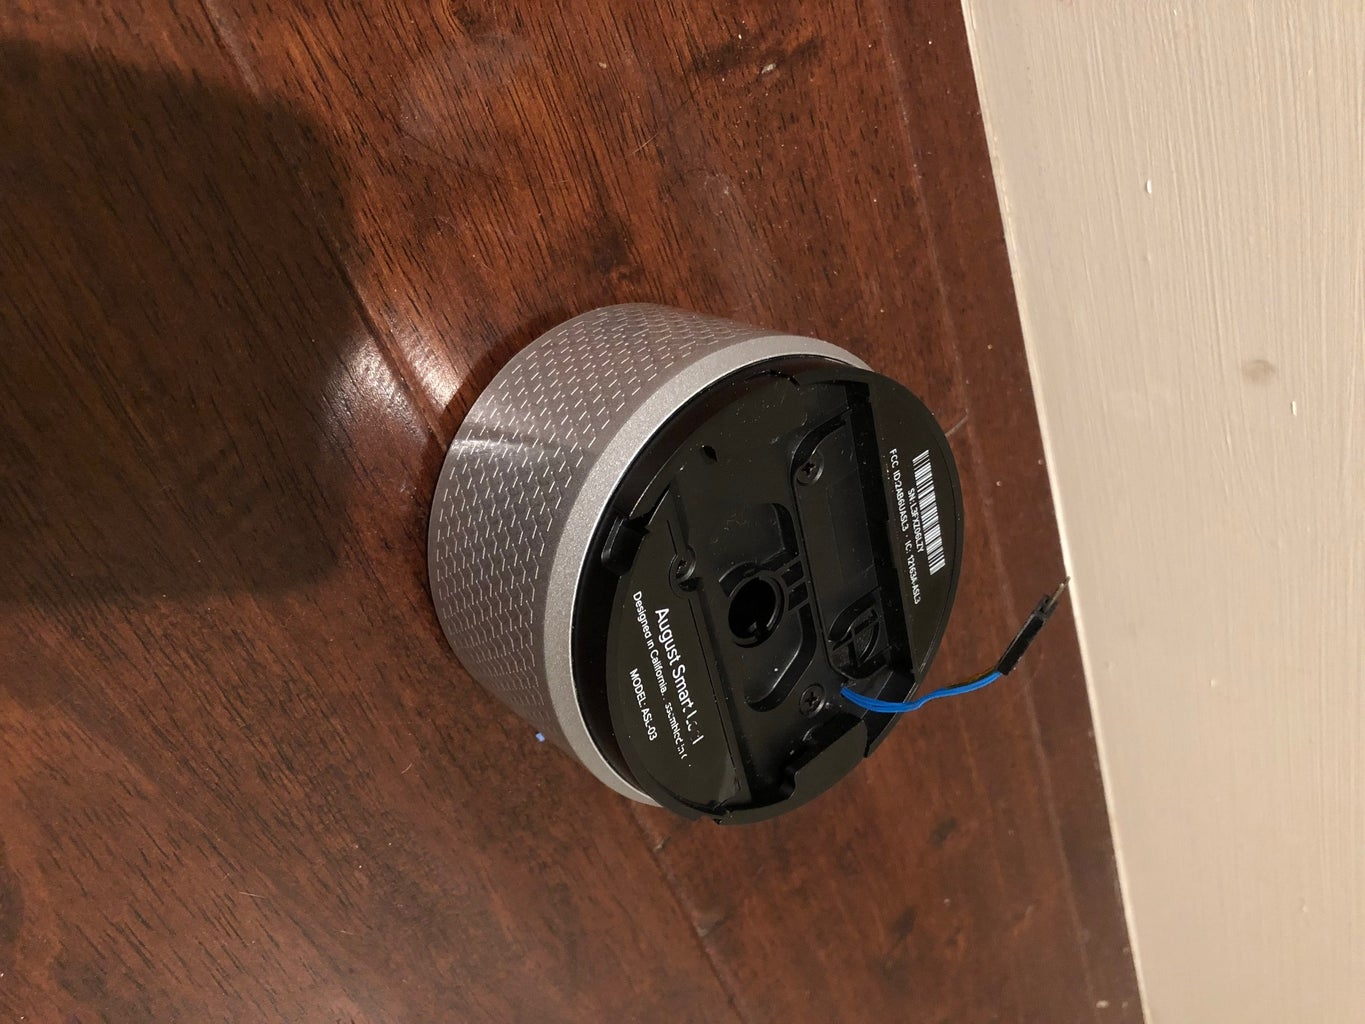 How to Get Power to the August Smart Lock?